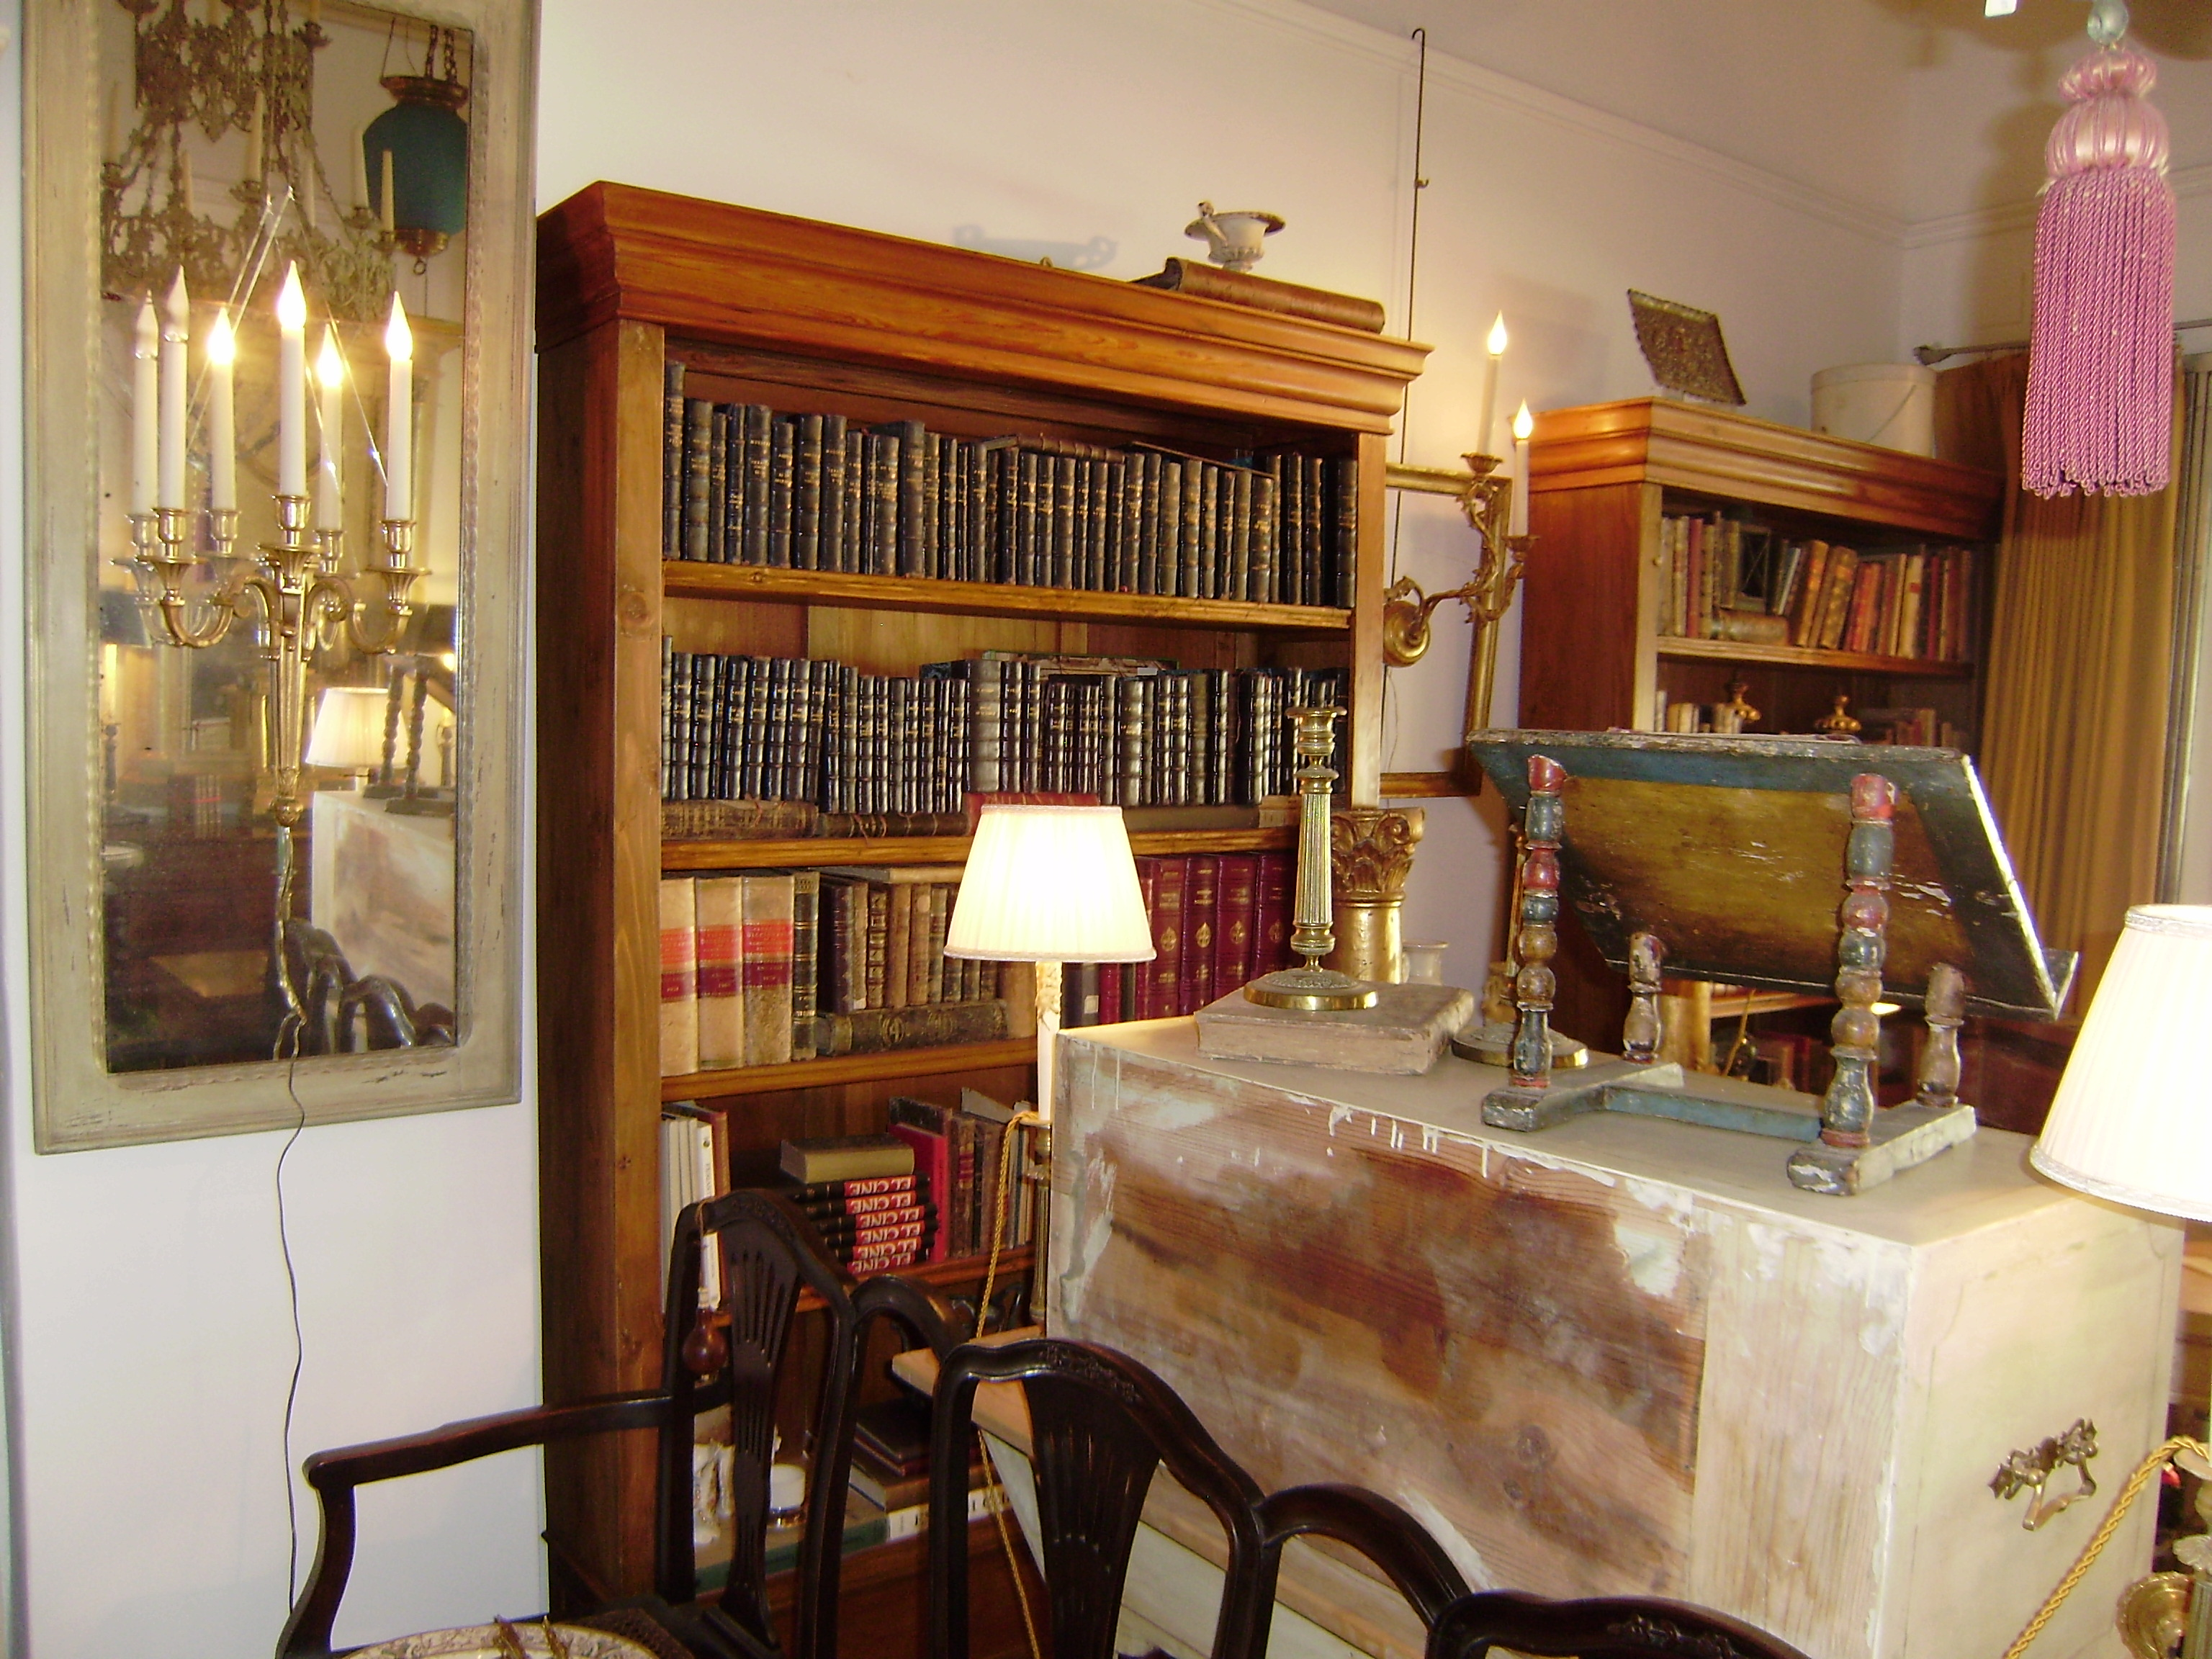 301 moved permanently - Muebles antiguos madrid ...